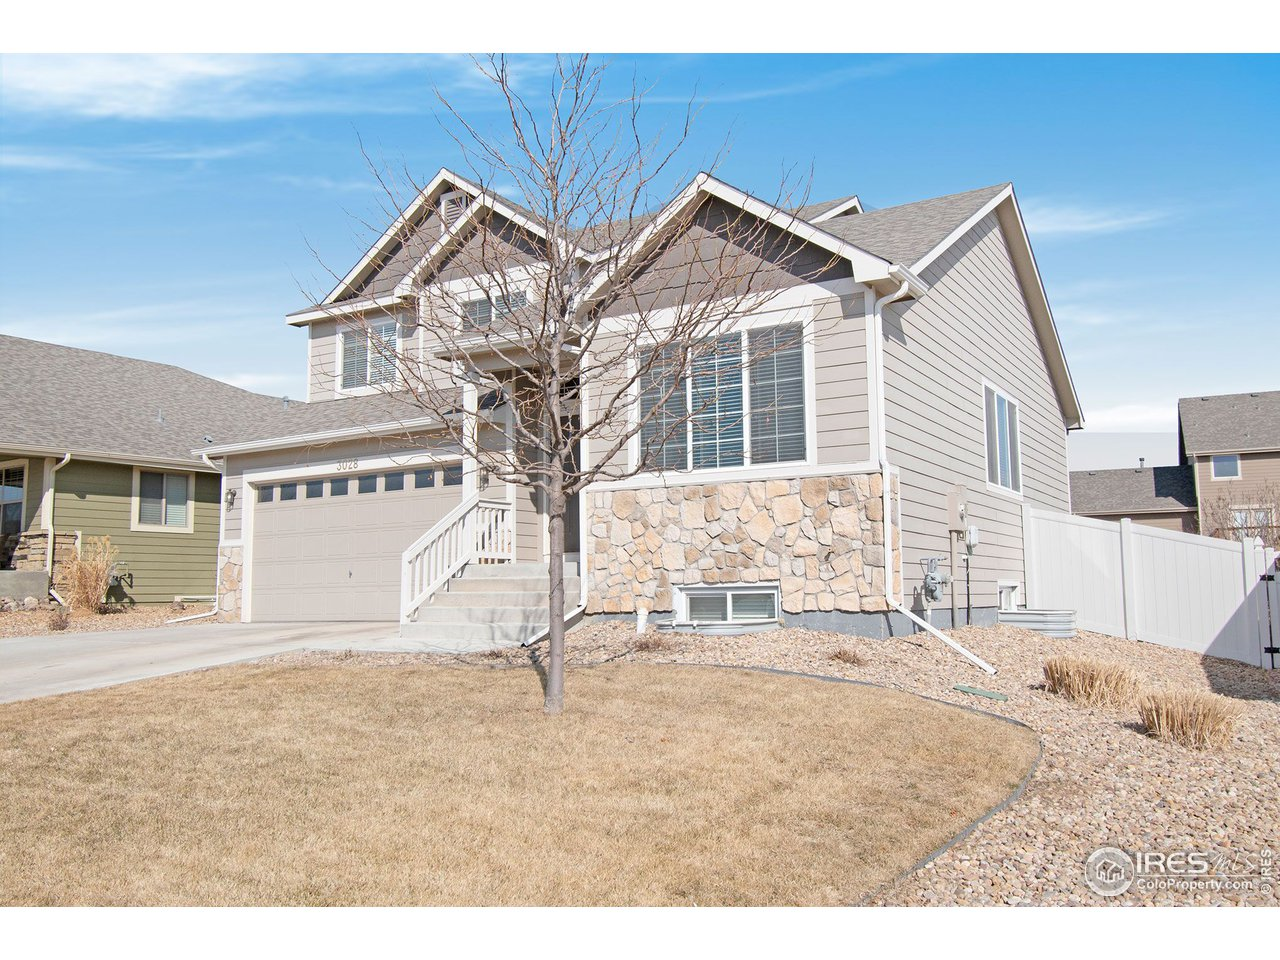 3028 68TH AVE CT, GREELEY, CO 80634